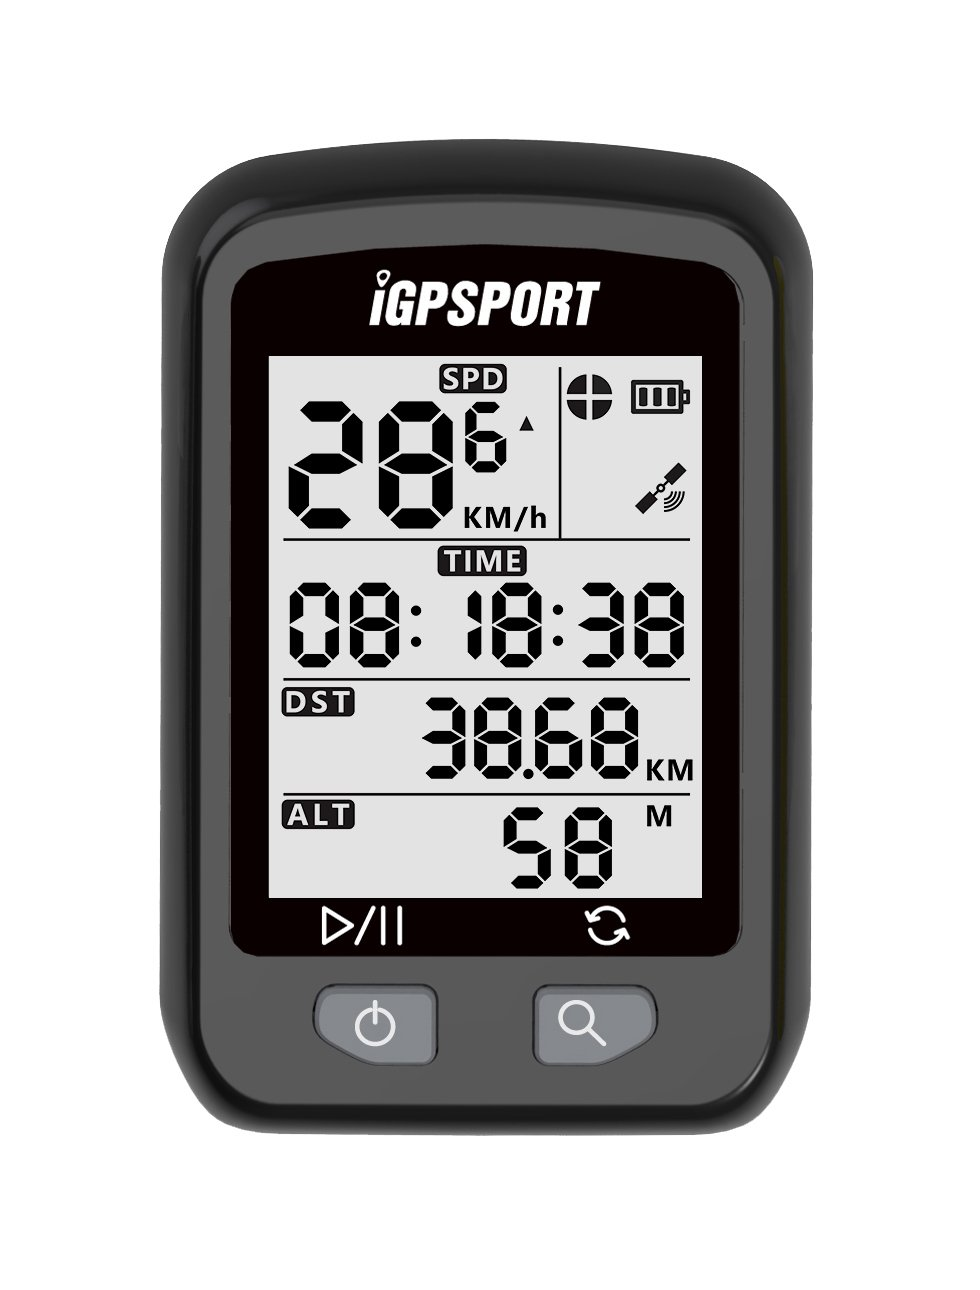 iGPSPORT 20E Waterproof GPS Wireless Cycling Bike Computer(Only Support Kilometer) by iGPSPORT